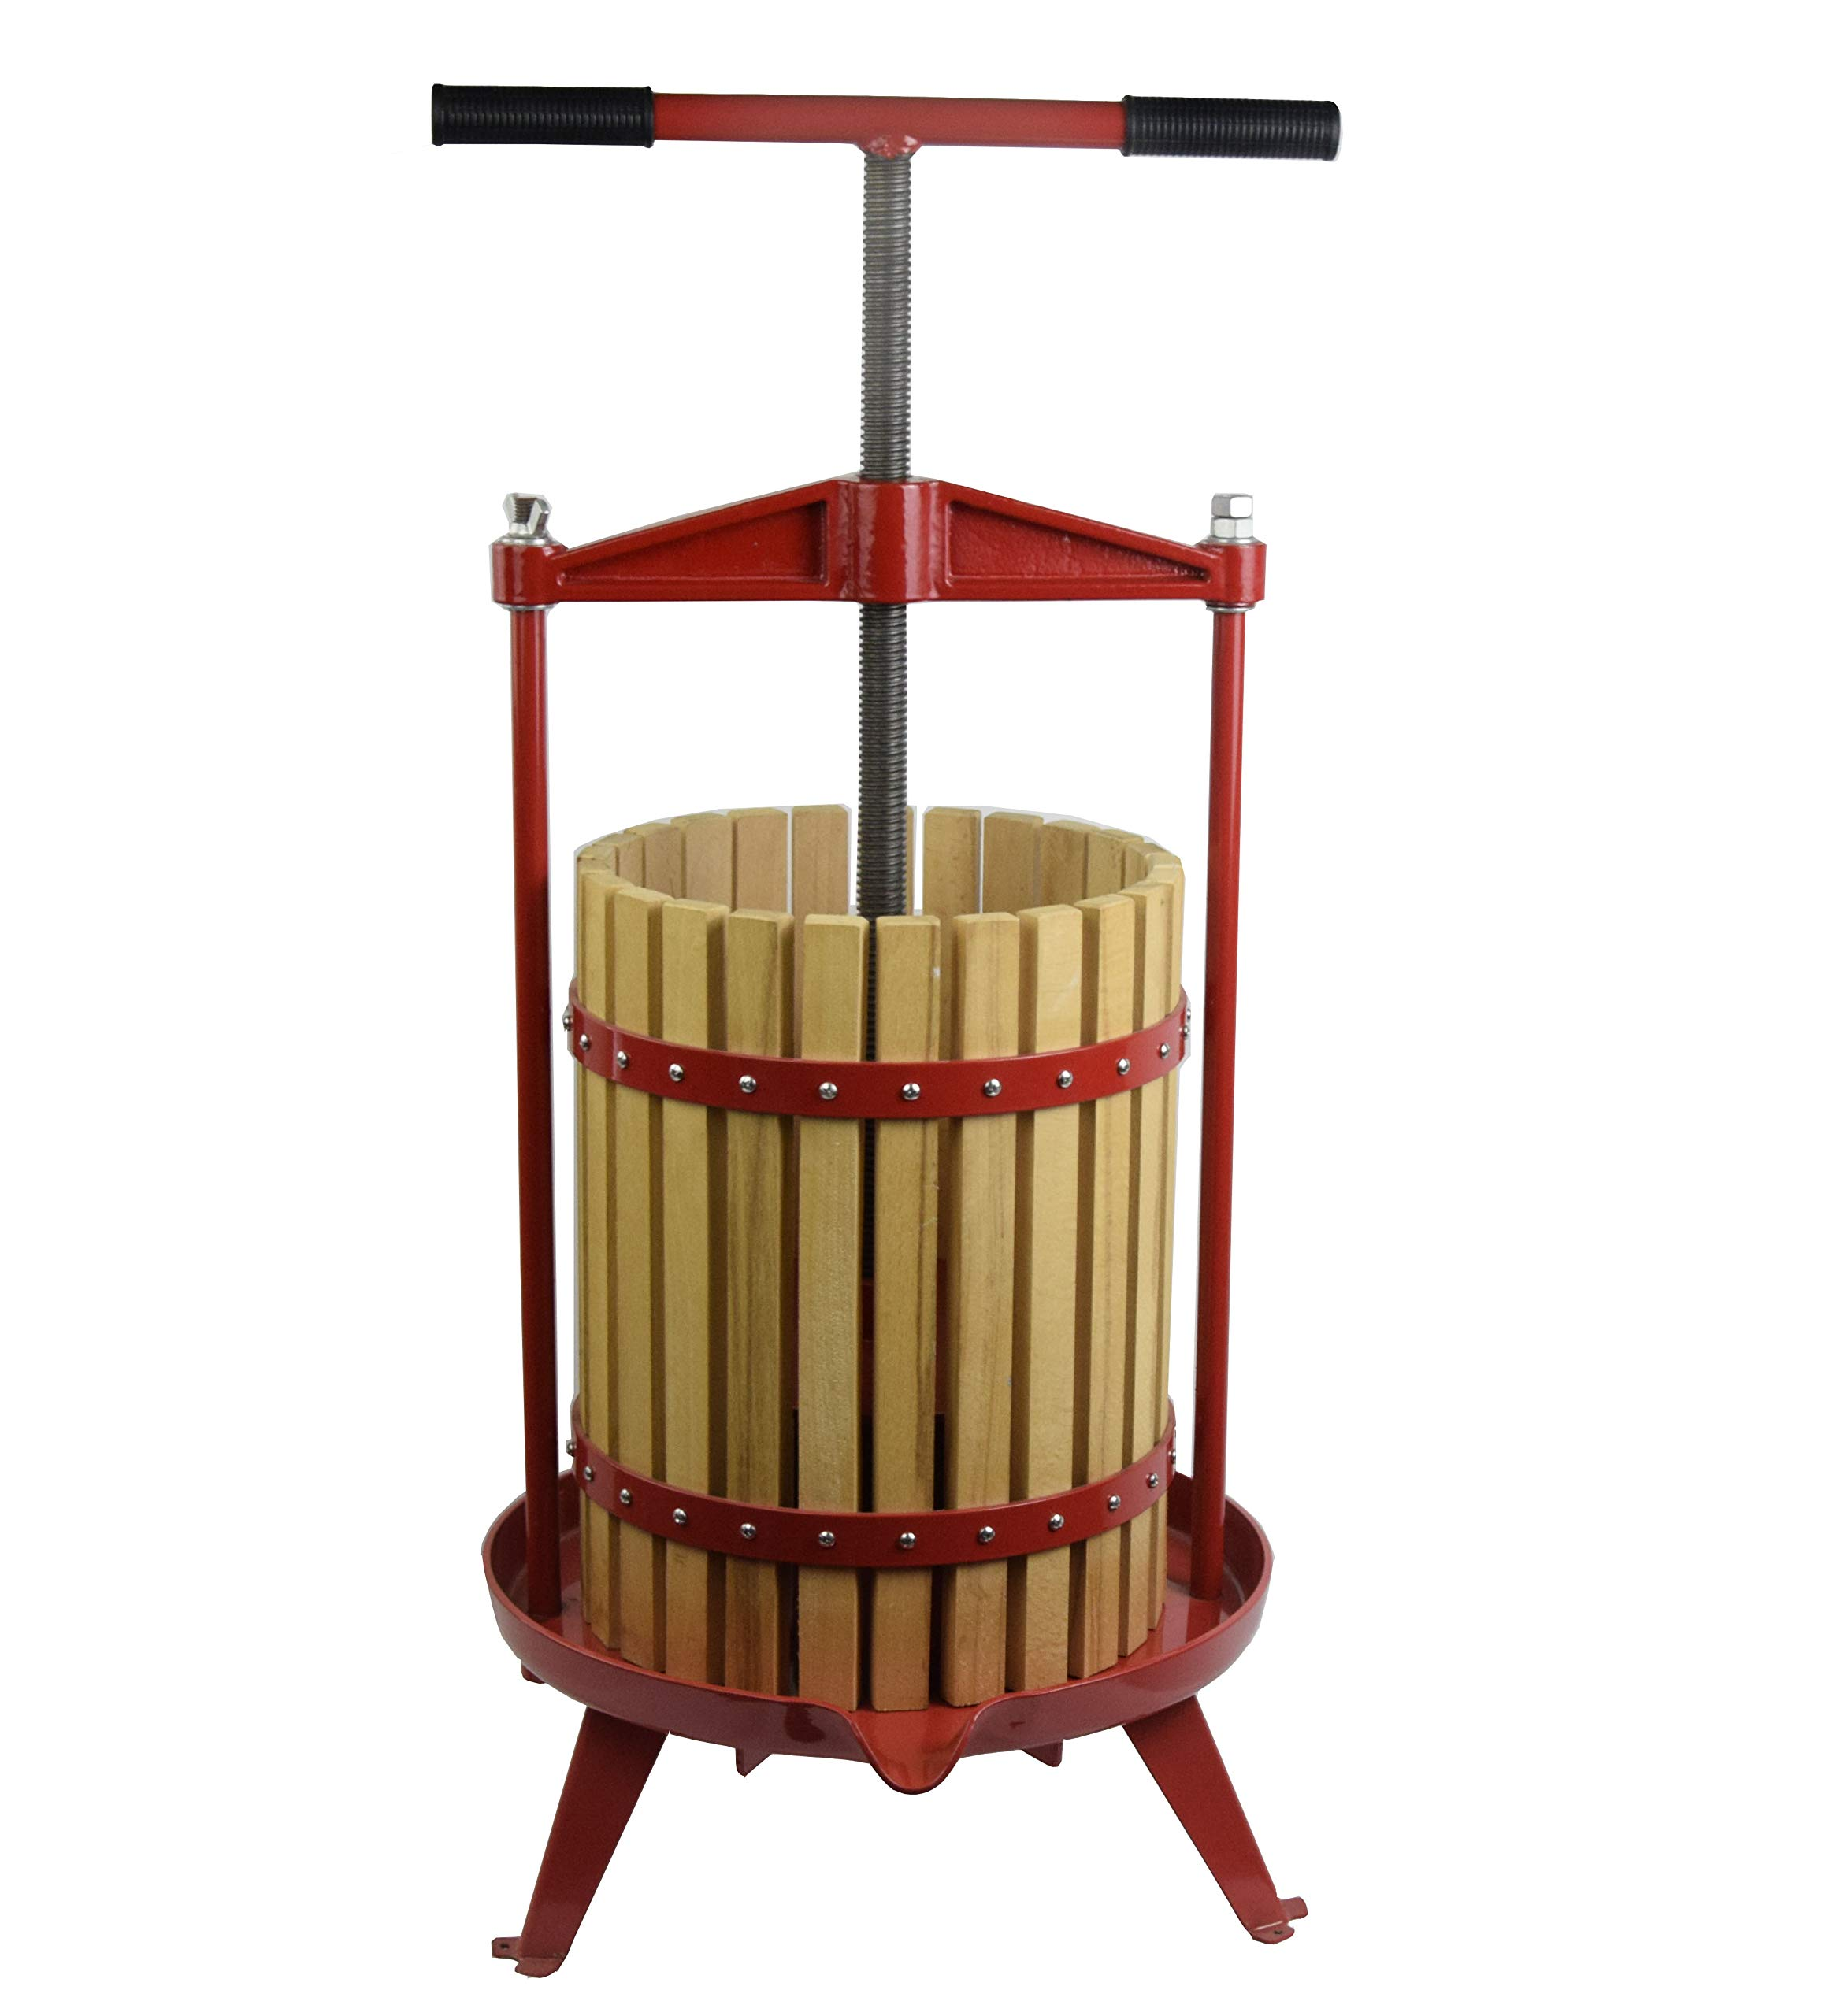 Solid Wood Apple Cider Press for Wine and Juice Making Pressing18L(4.75 gallons)